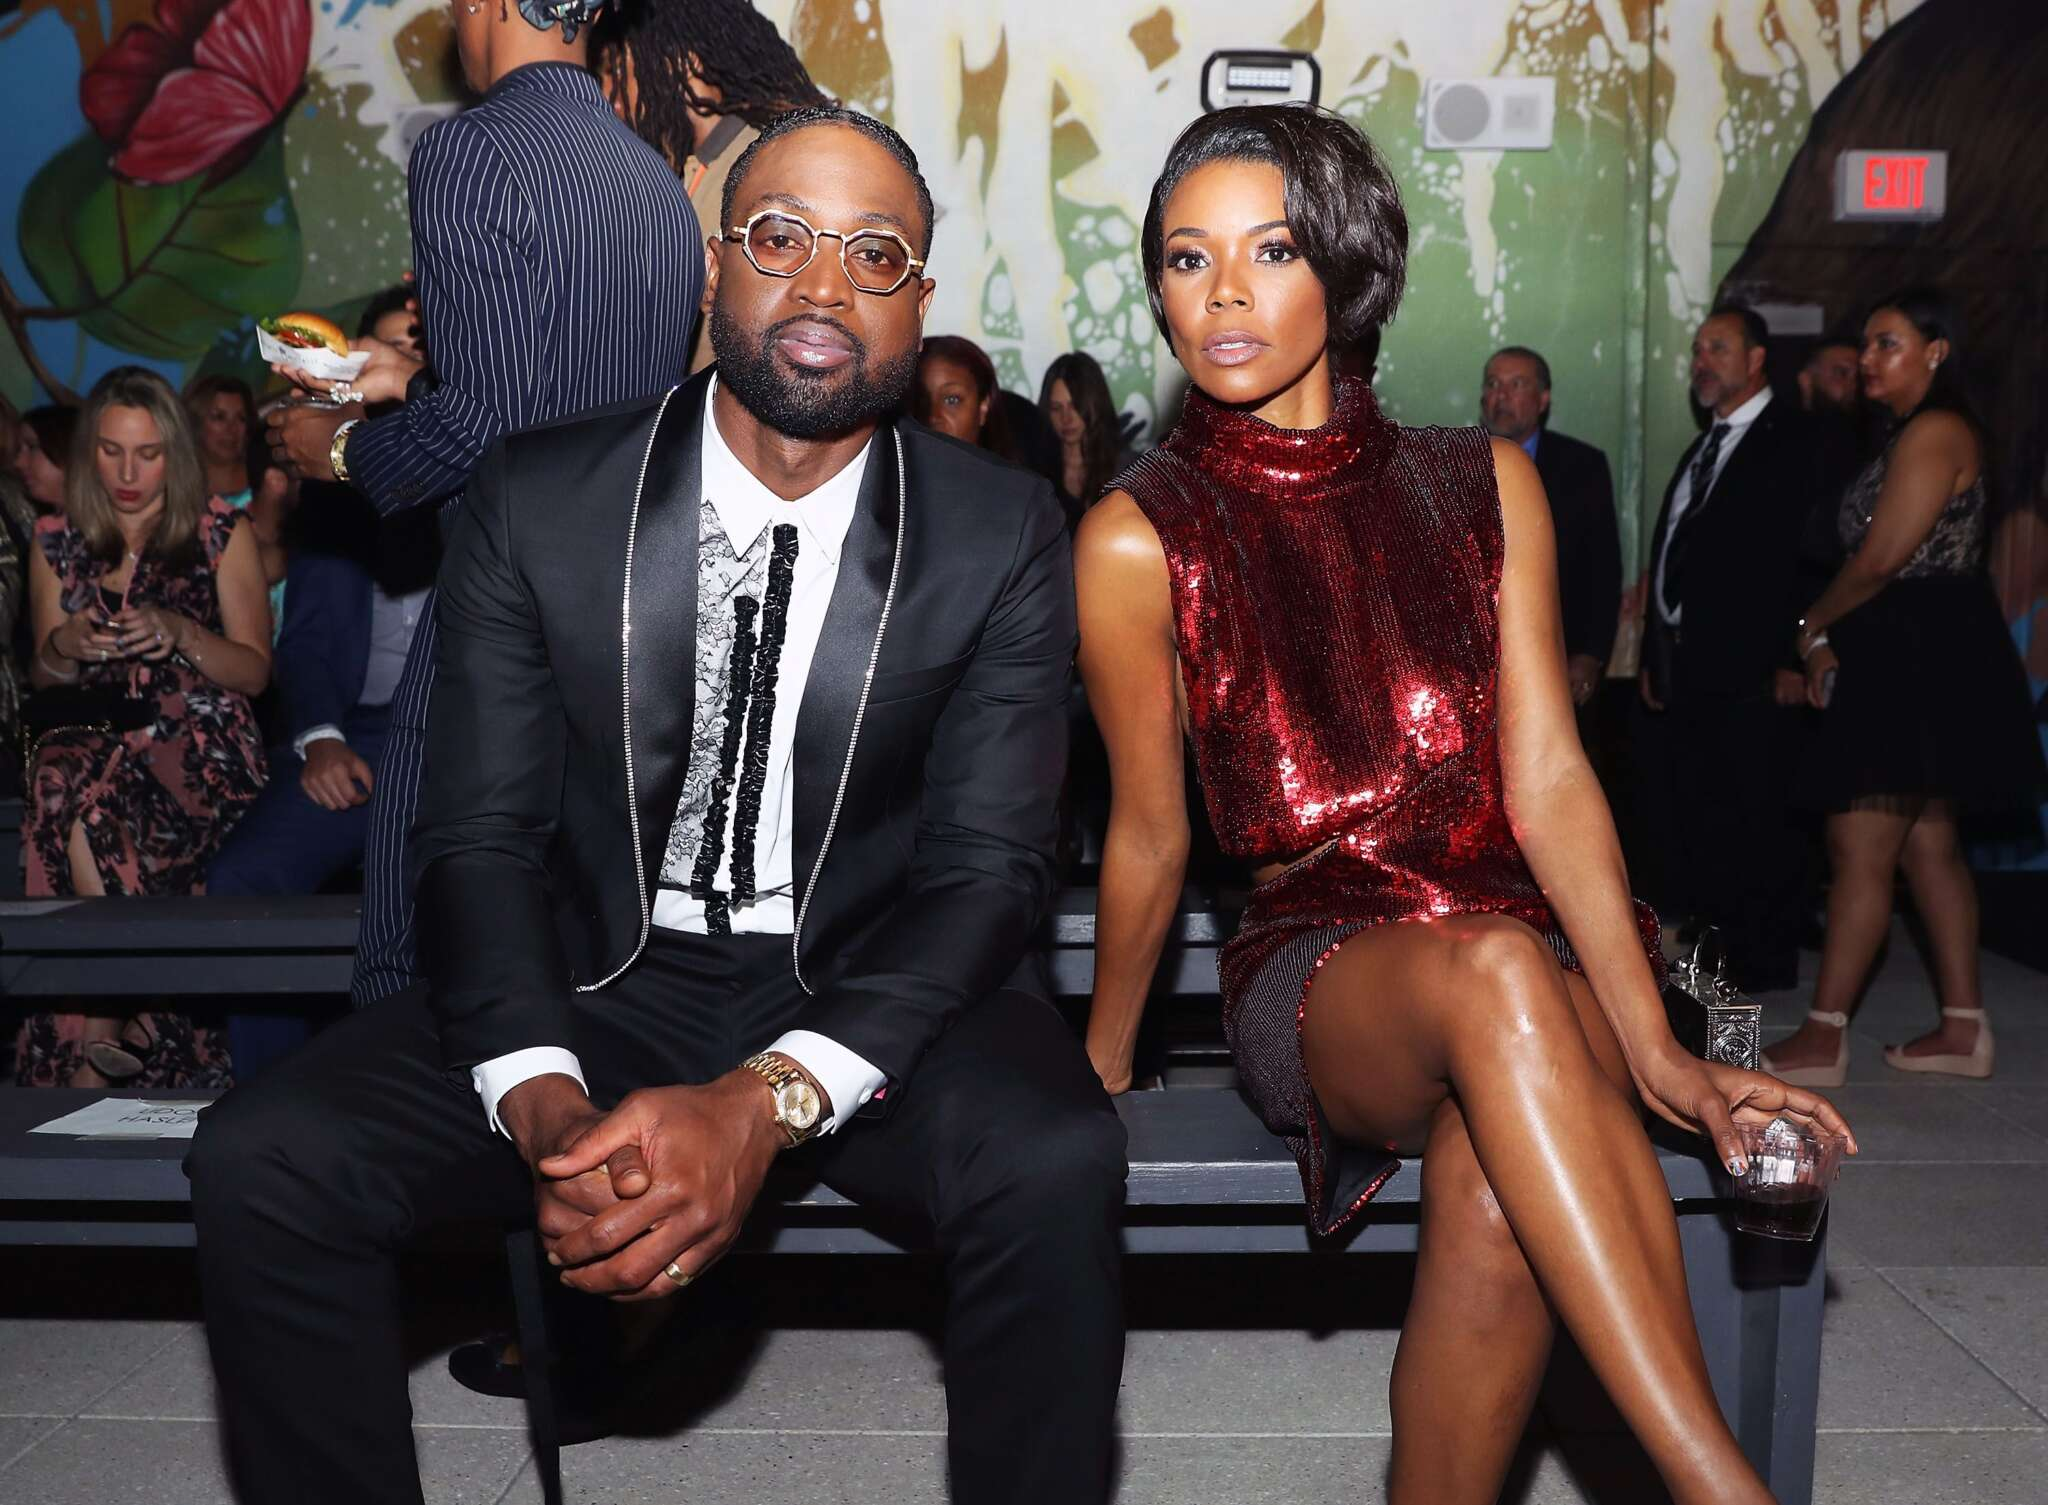 Gabrielle Union Poses With Dwyane Wade And Makes Fans Happy With Their Own Happiness